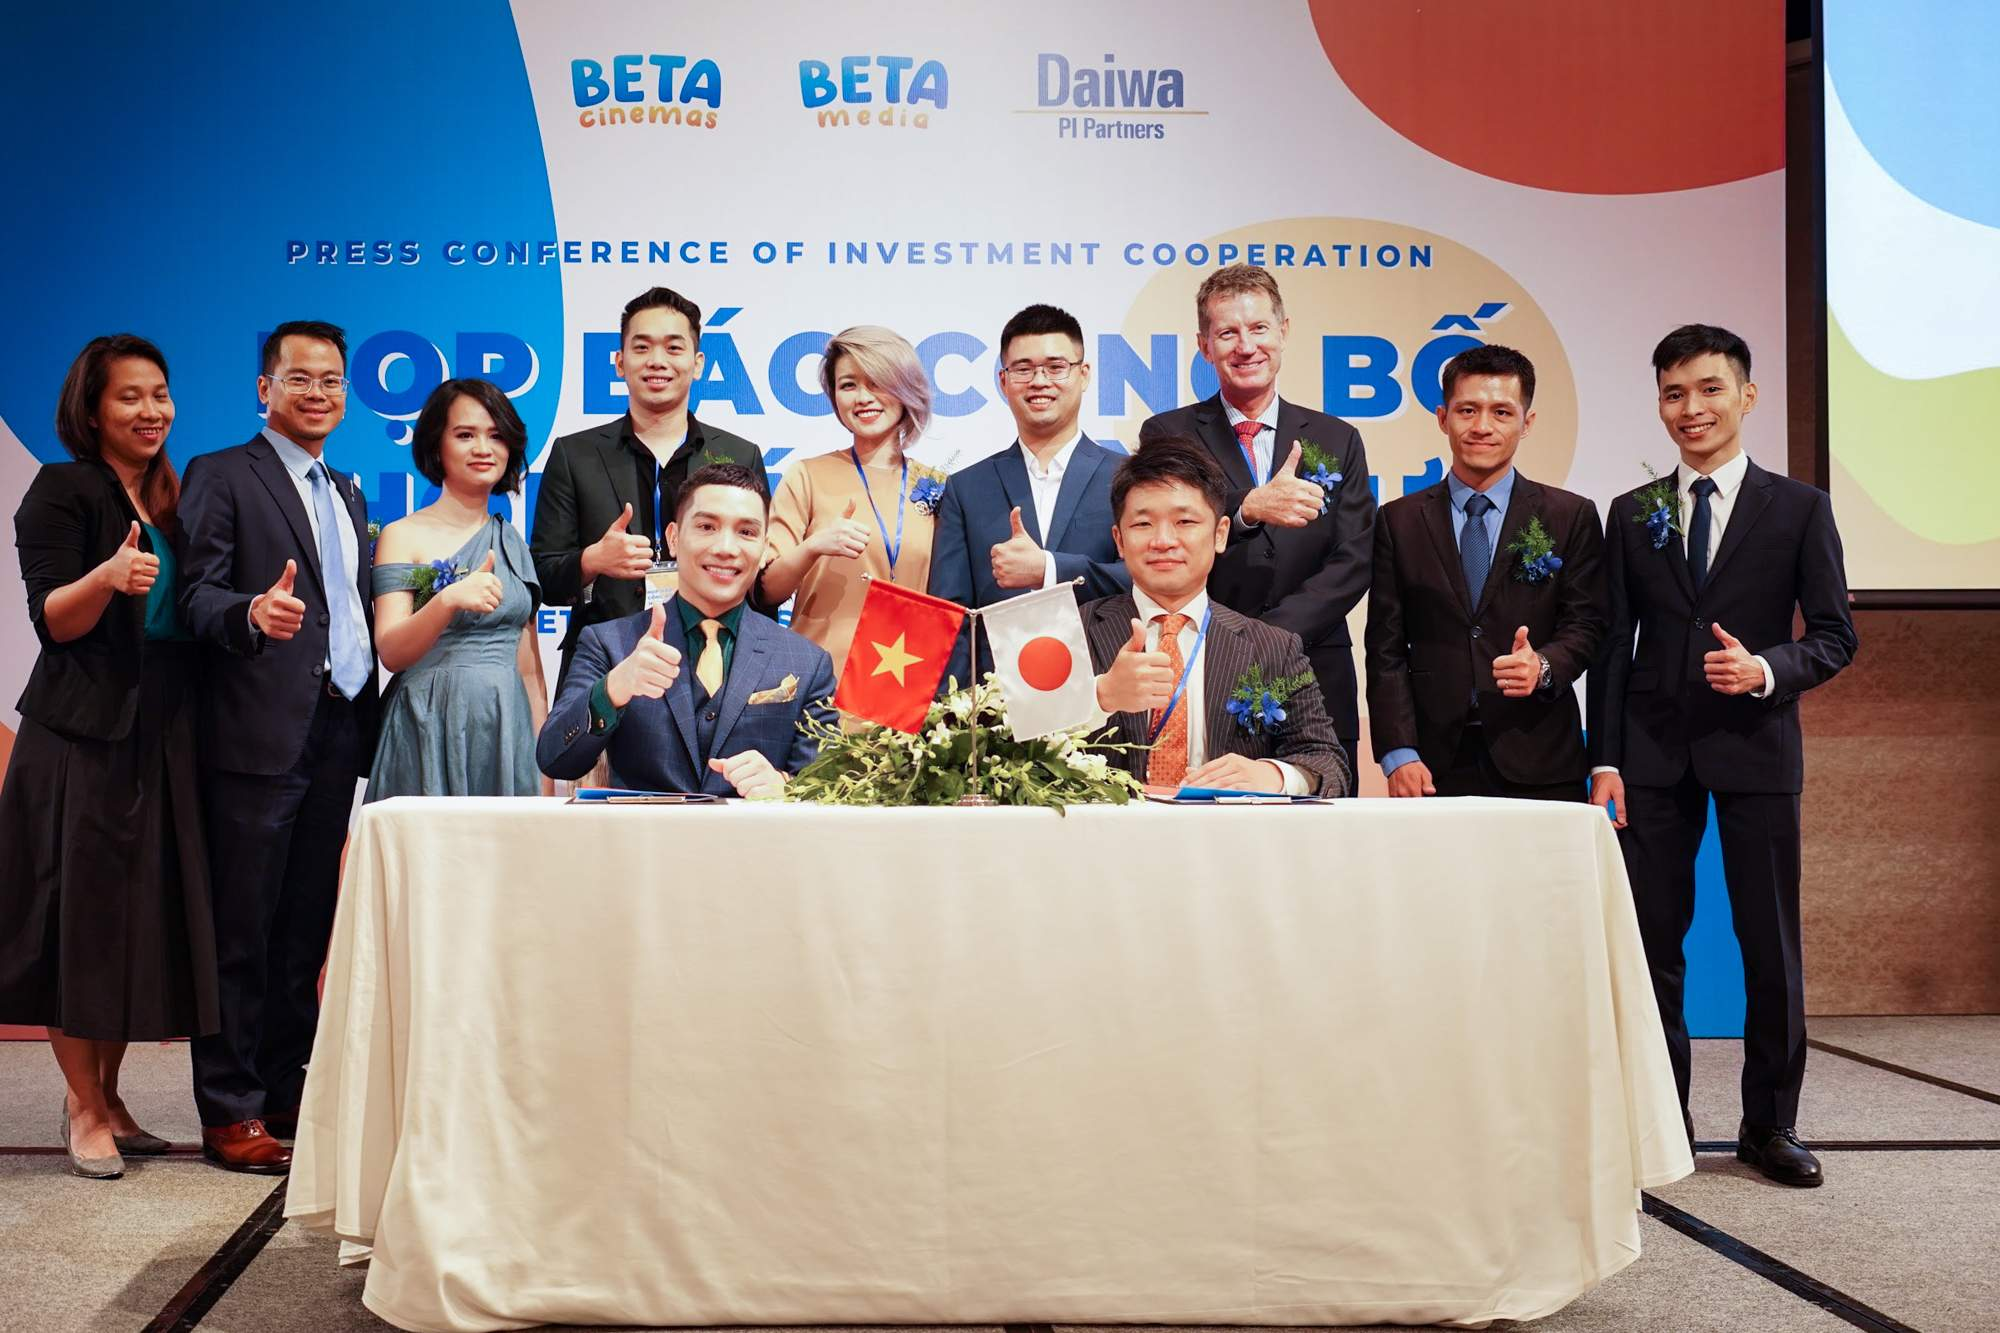 Beta Media Puts Capital To Work With A Promise Of Affordable Cinema